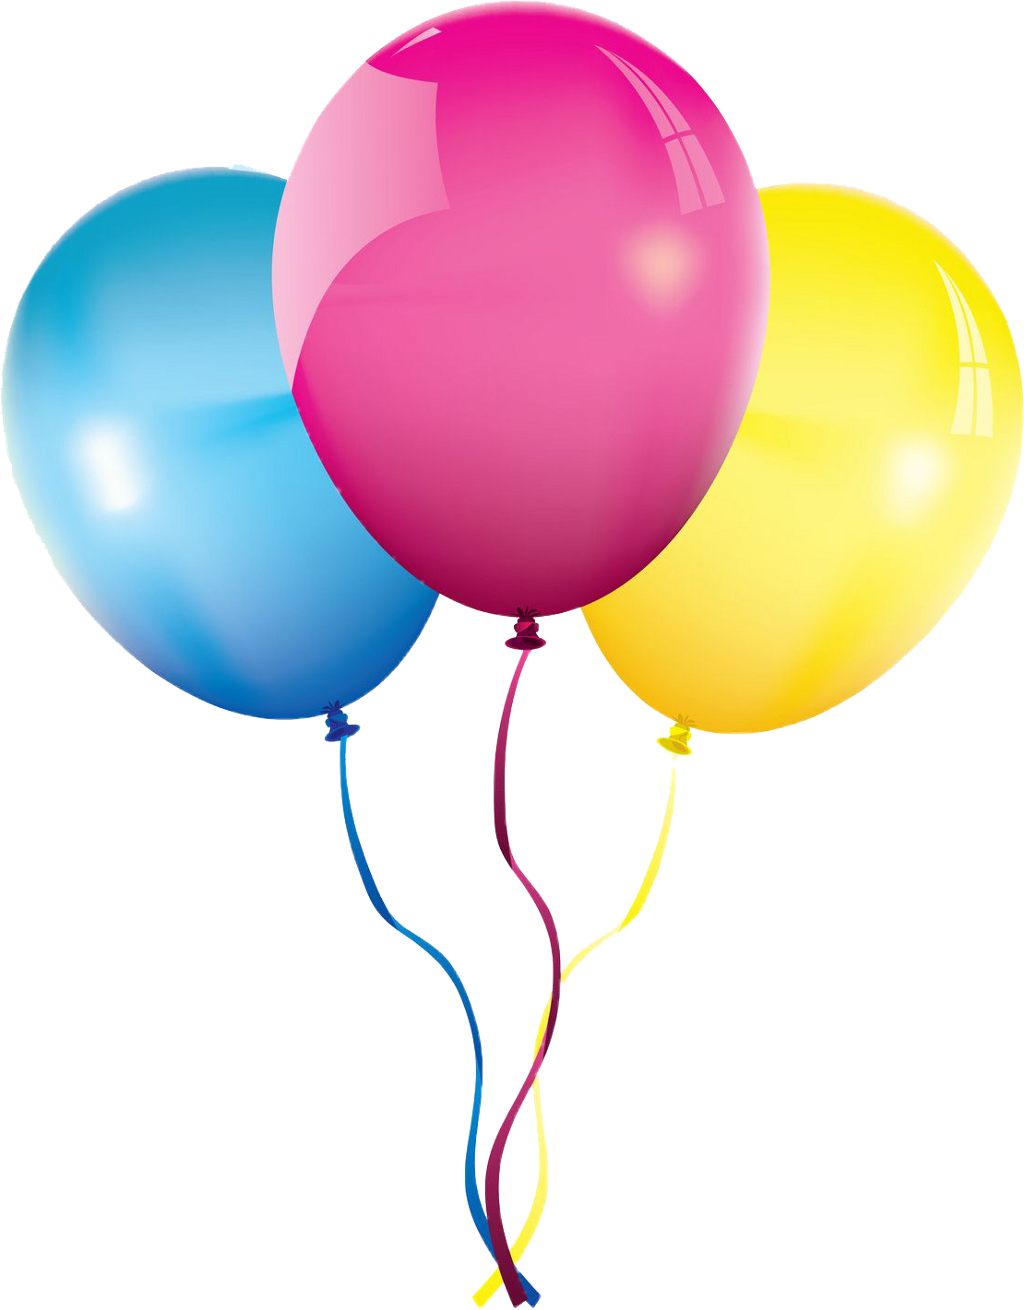 Pink balloons photography png. Cute birthday tellow blue